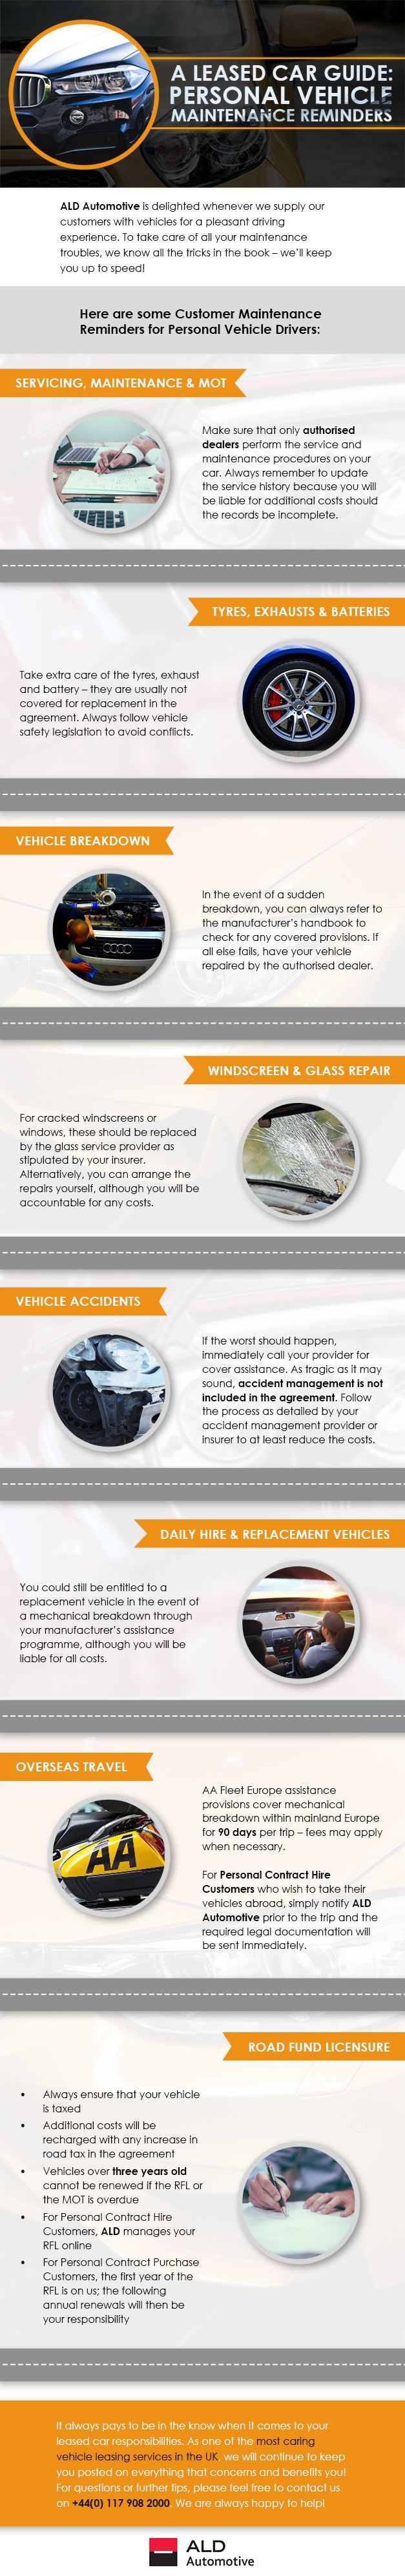 A Leased Car Guide: Personal Vehicle Maintenance Reminders